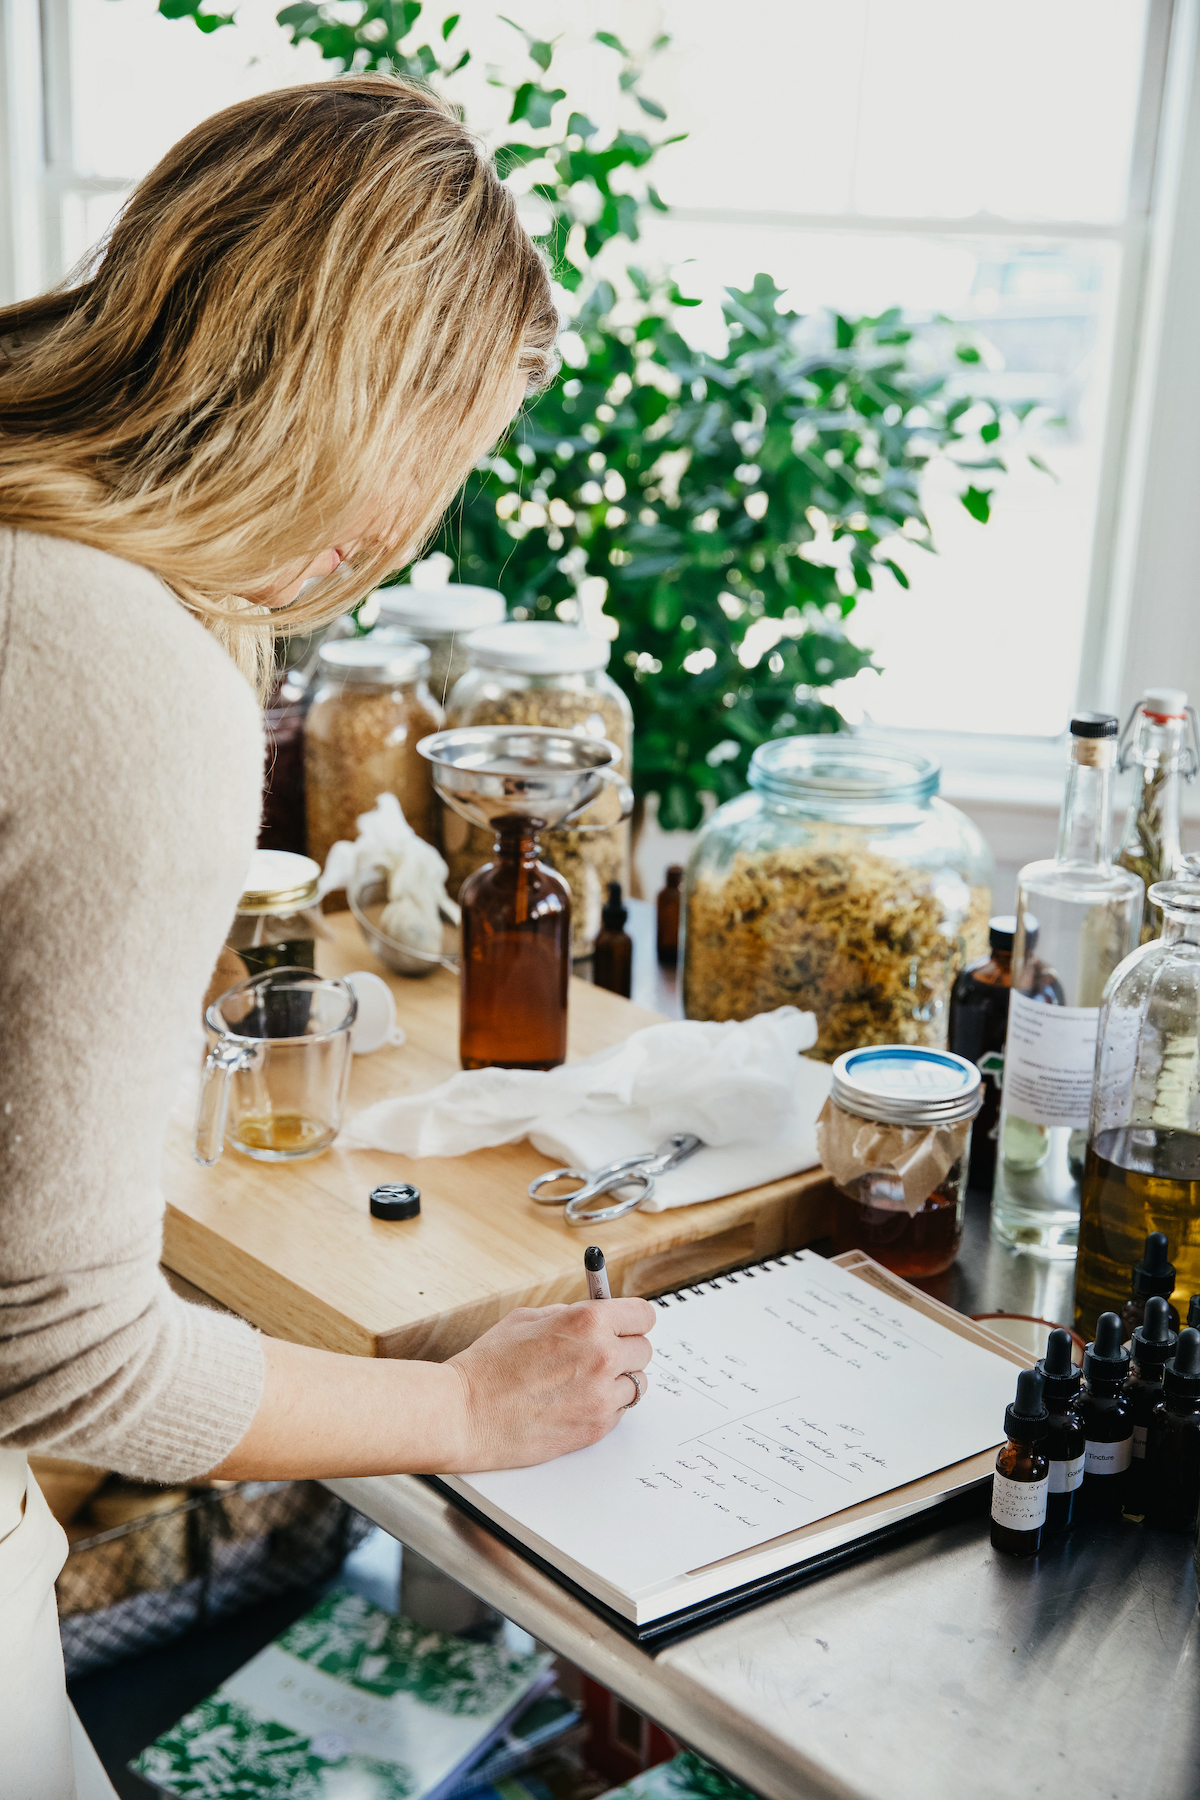 Making Herbal Products for sale - Advanced Herbal Course